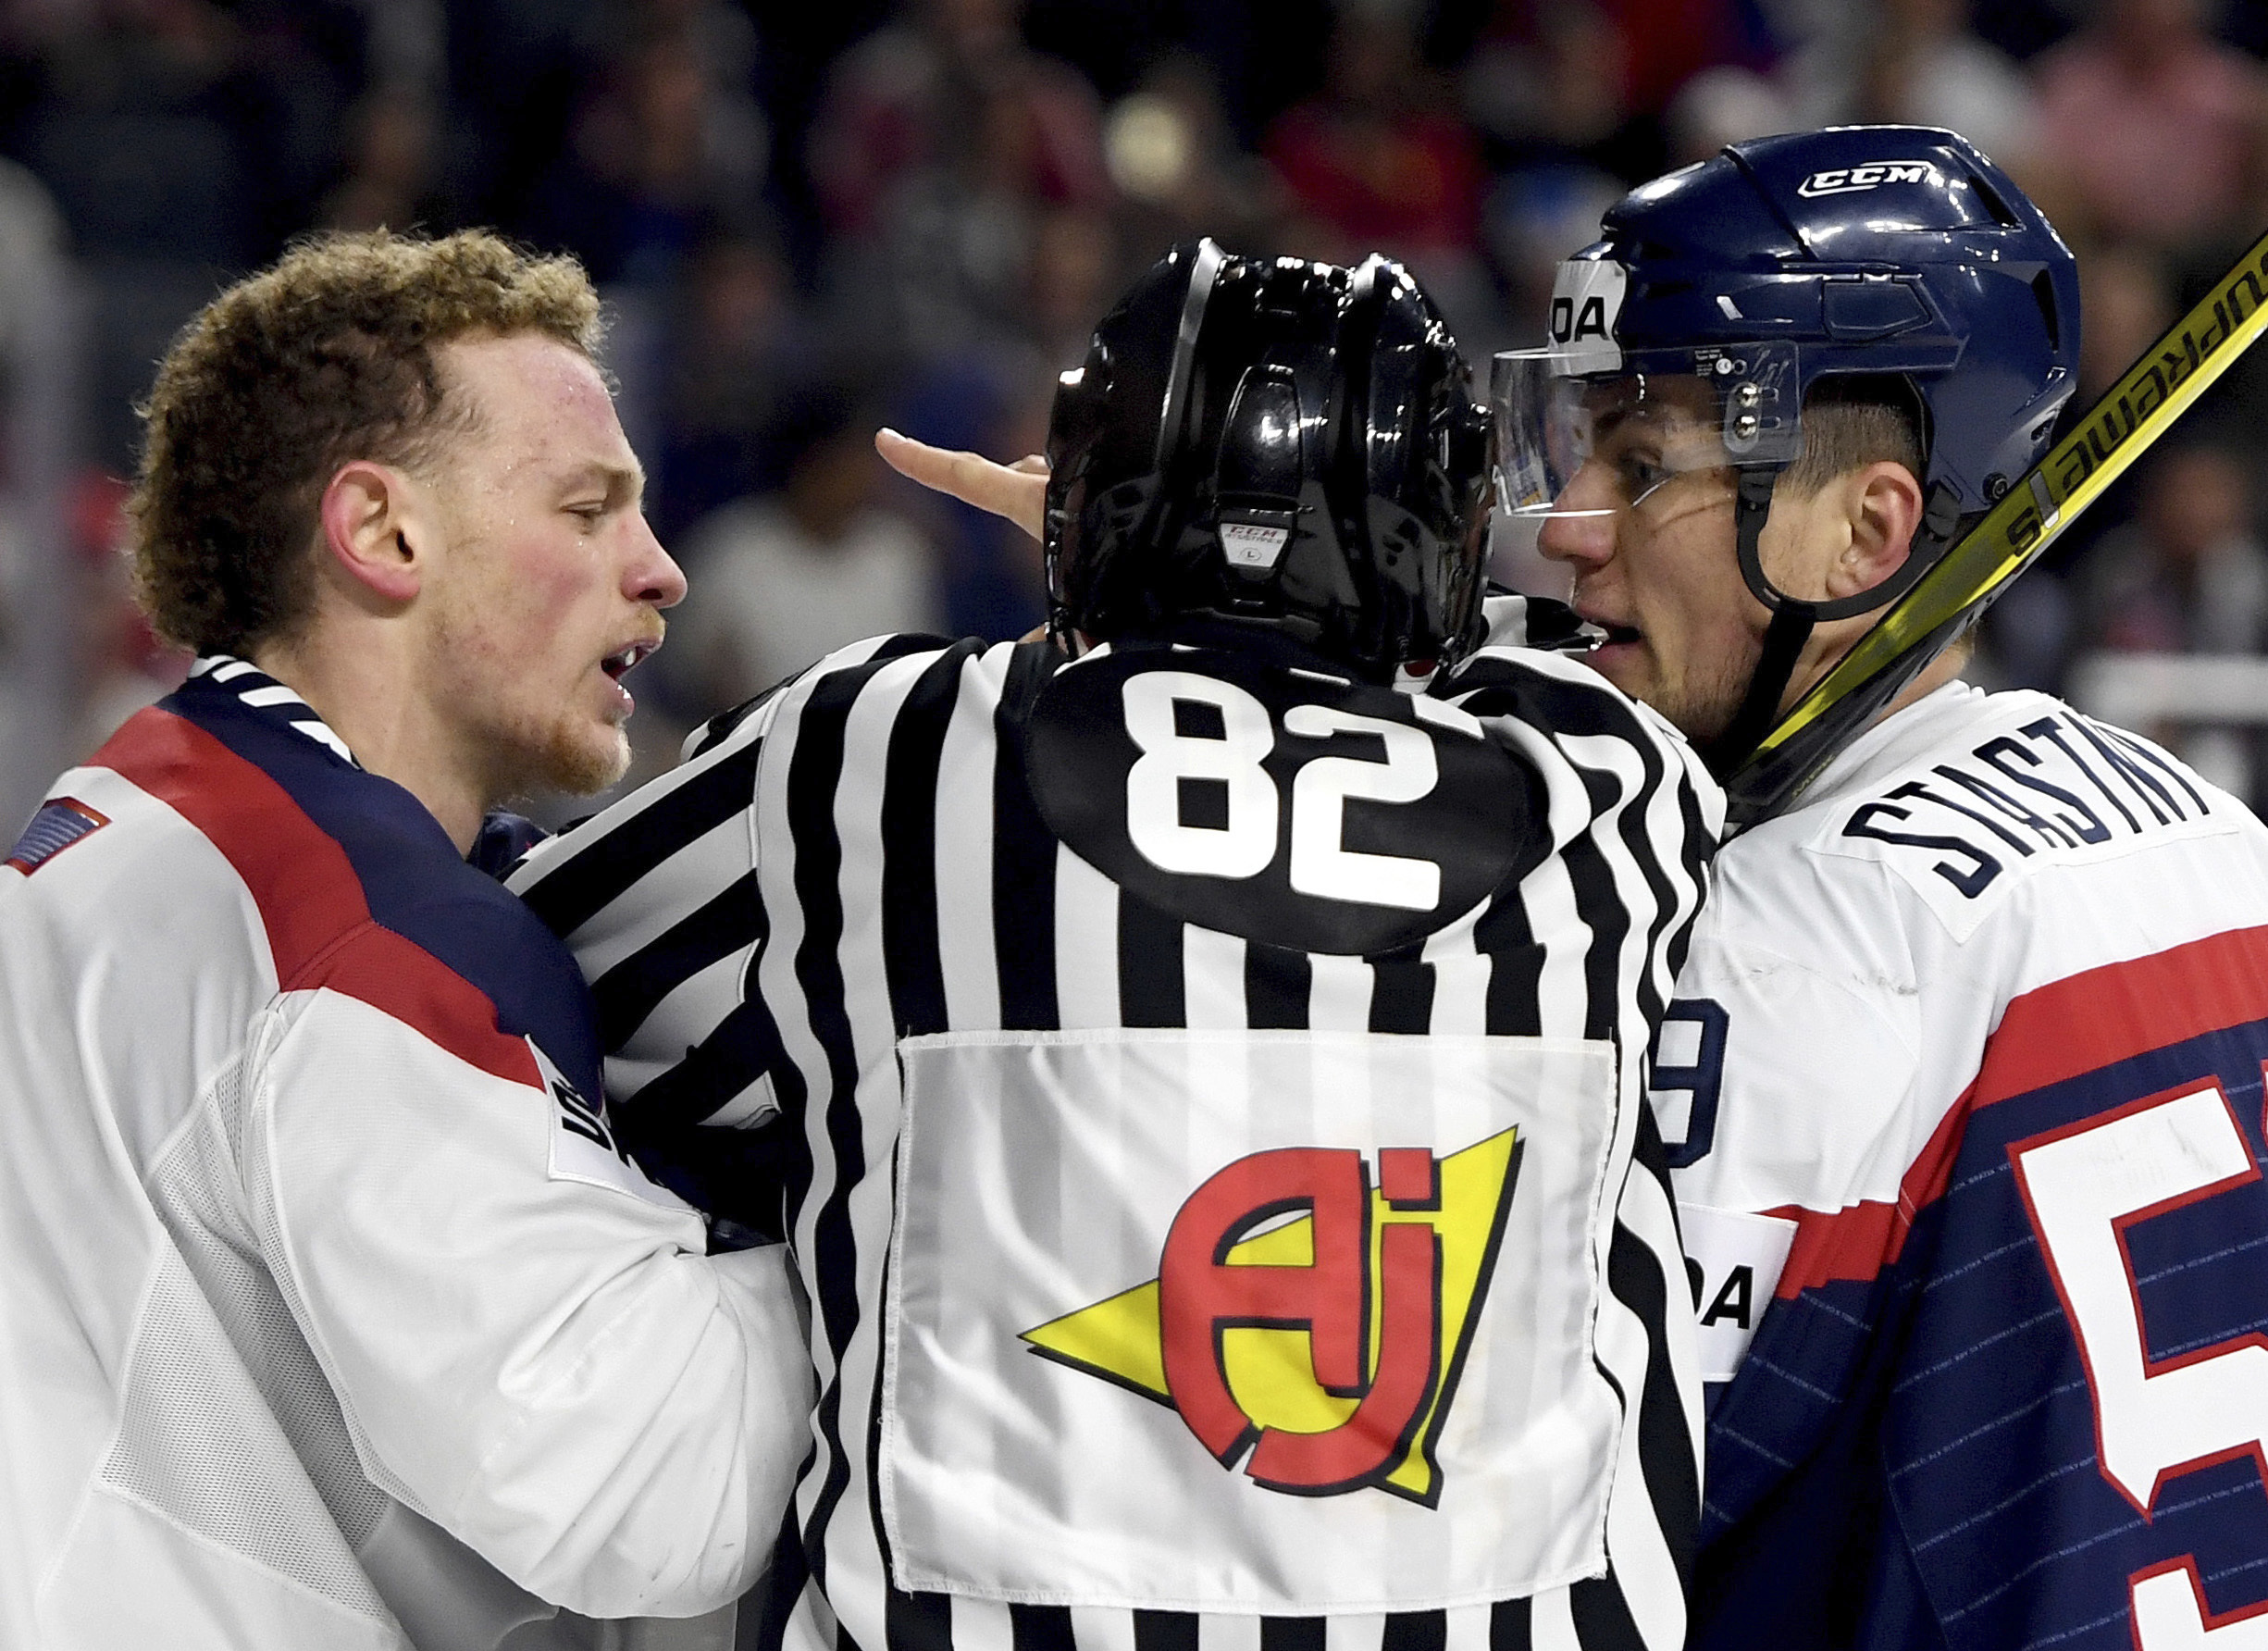 Slovakia's Andrej Stastny, right, and US player Jack Eichel, left, and the referee scuffle during a group A match between Slovakia and USA at the 2017 Hockey World Championships in the Lanxess Arena in  Cologne, Germany, Sunday, May 14, 2017.  (Monika Skolimowska/dpa via AP)